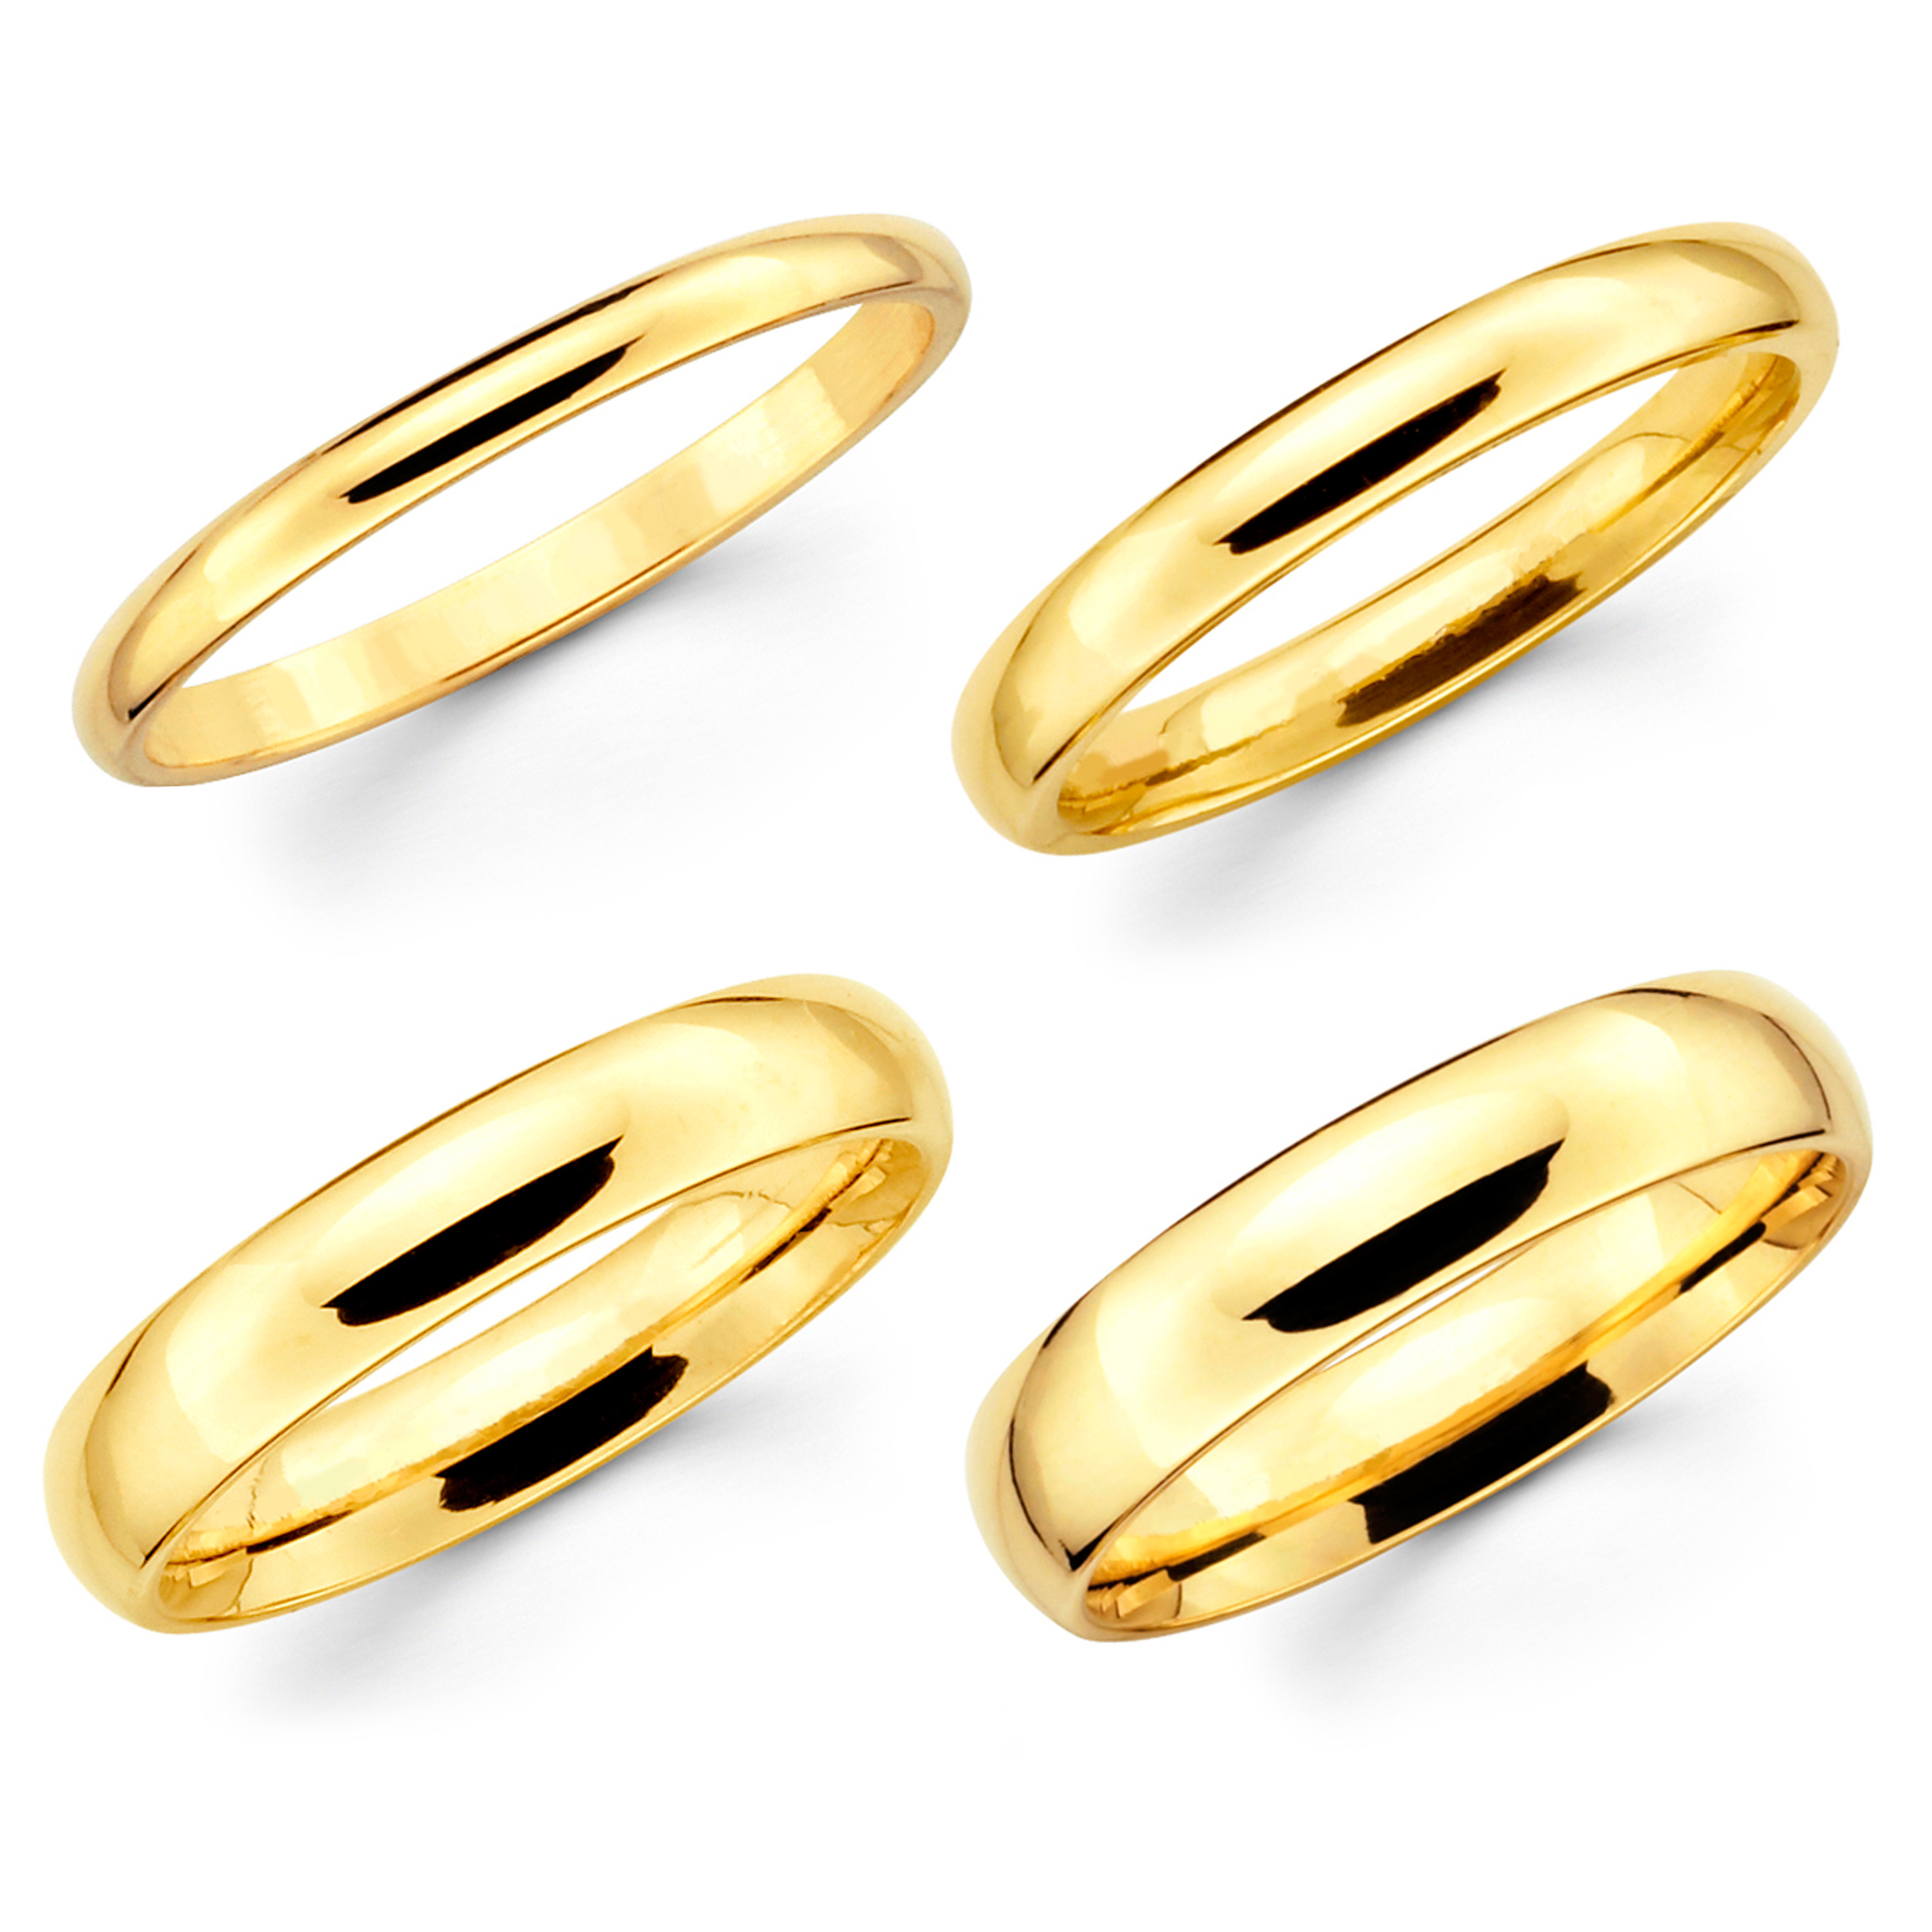 gold kt titan finger ring tanishq buy plain men for product yellow online rings id